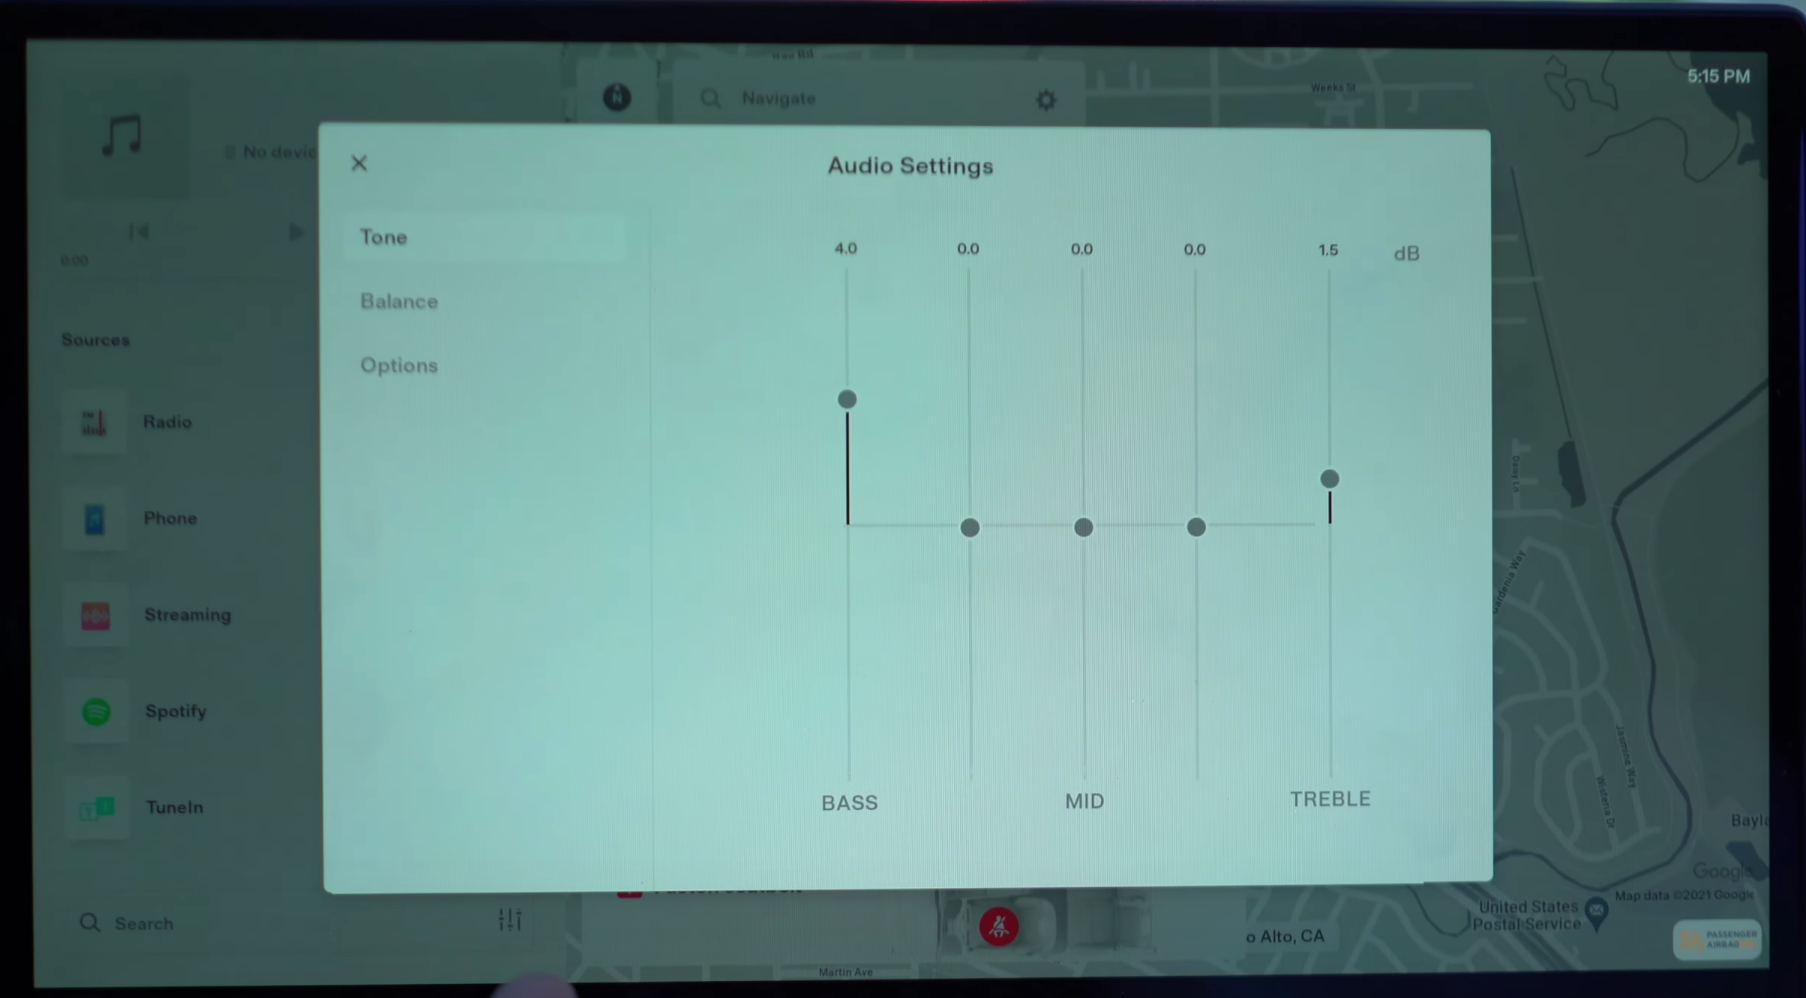 Adjusting the audio settings such as treble and balance through sliders